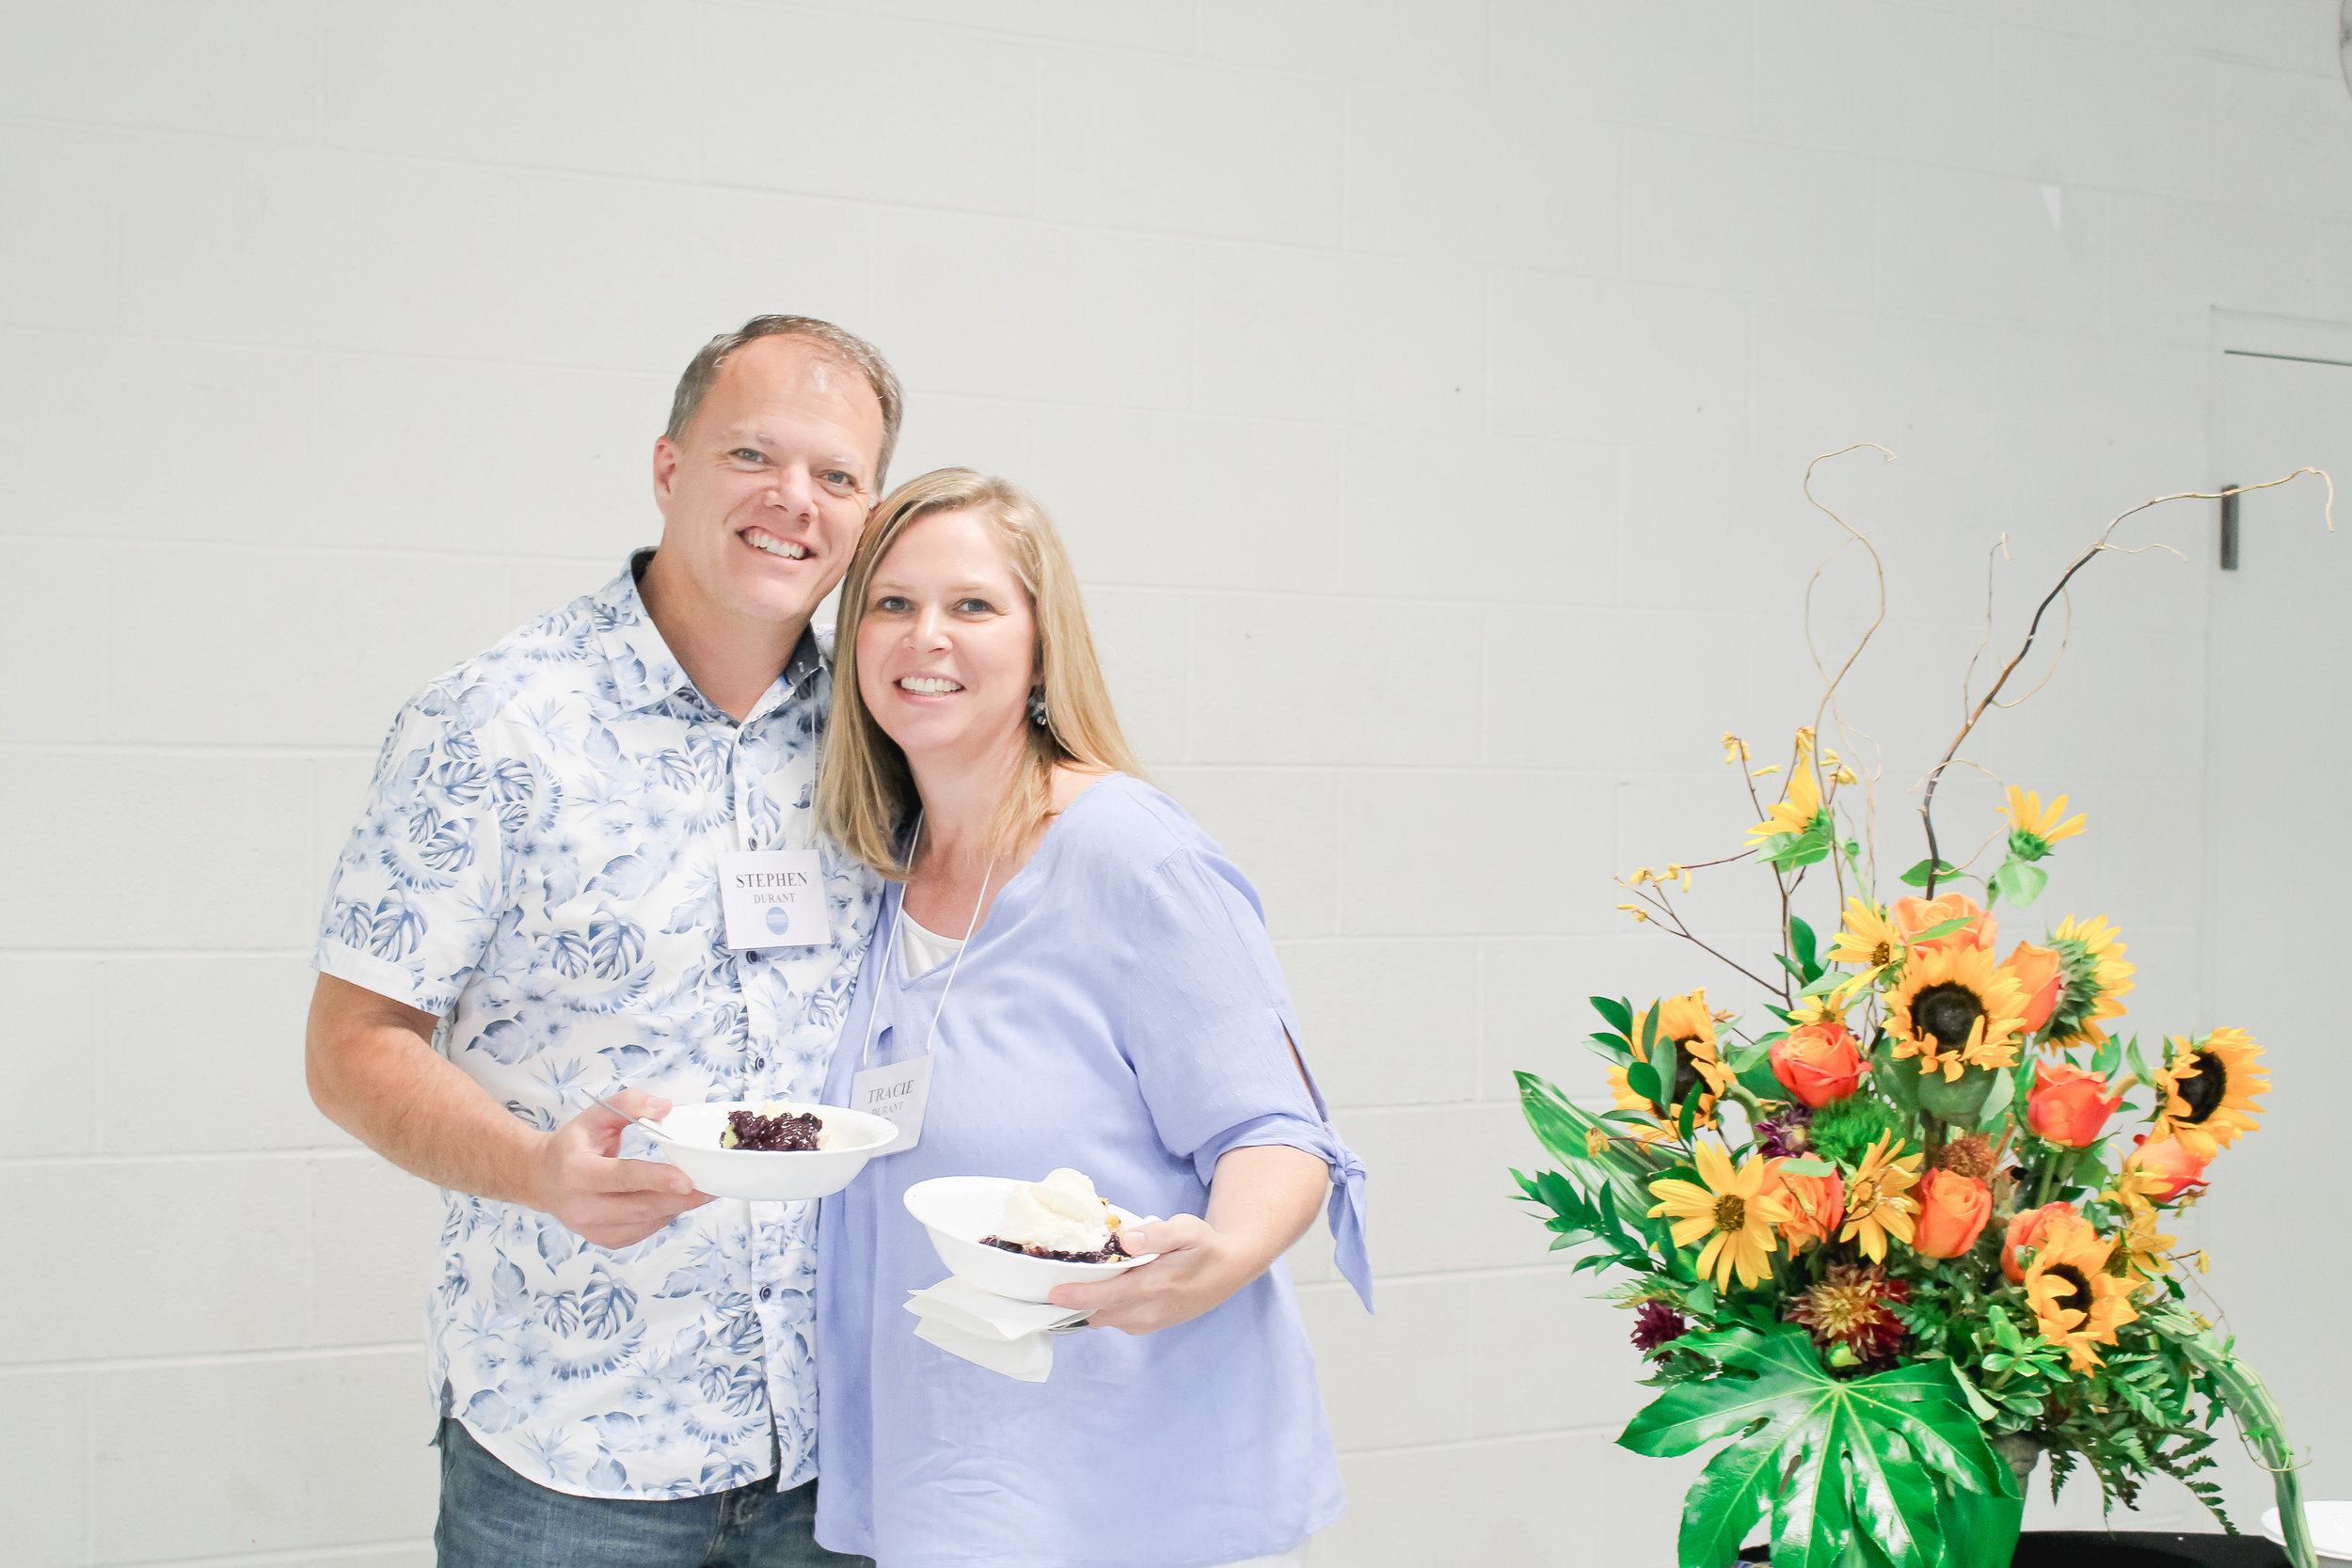 marriage_ministry_training_2018 (16 of 19).jpg